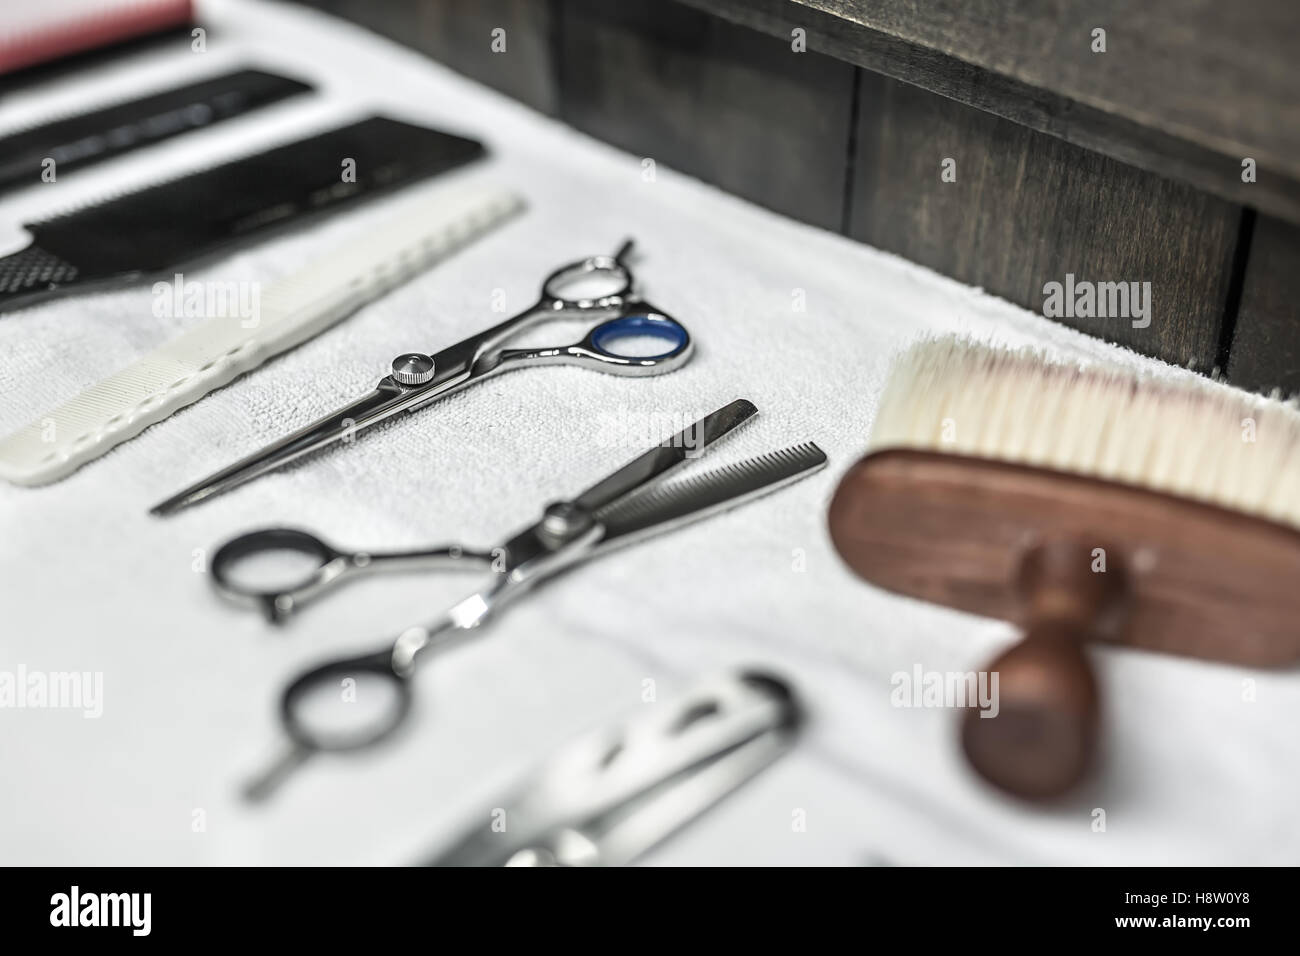 Hairdresser accessories in barbershop - Stock Image